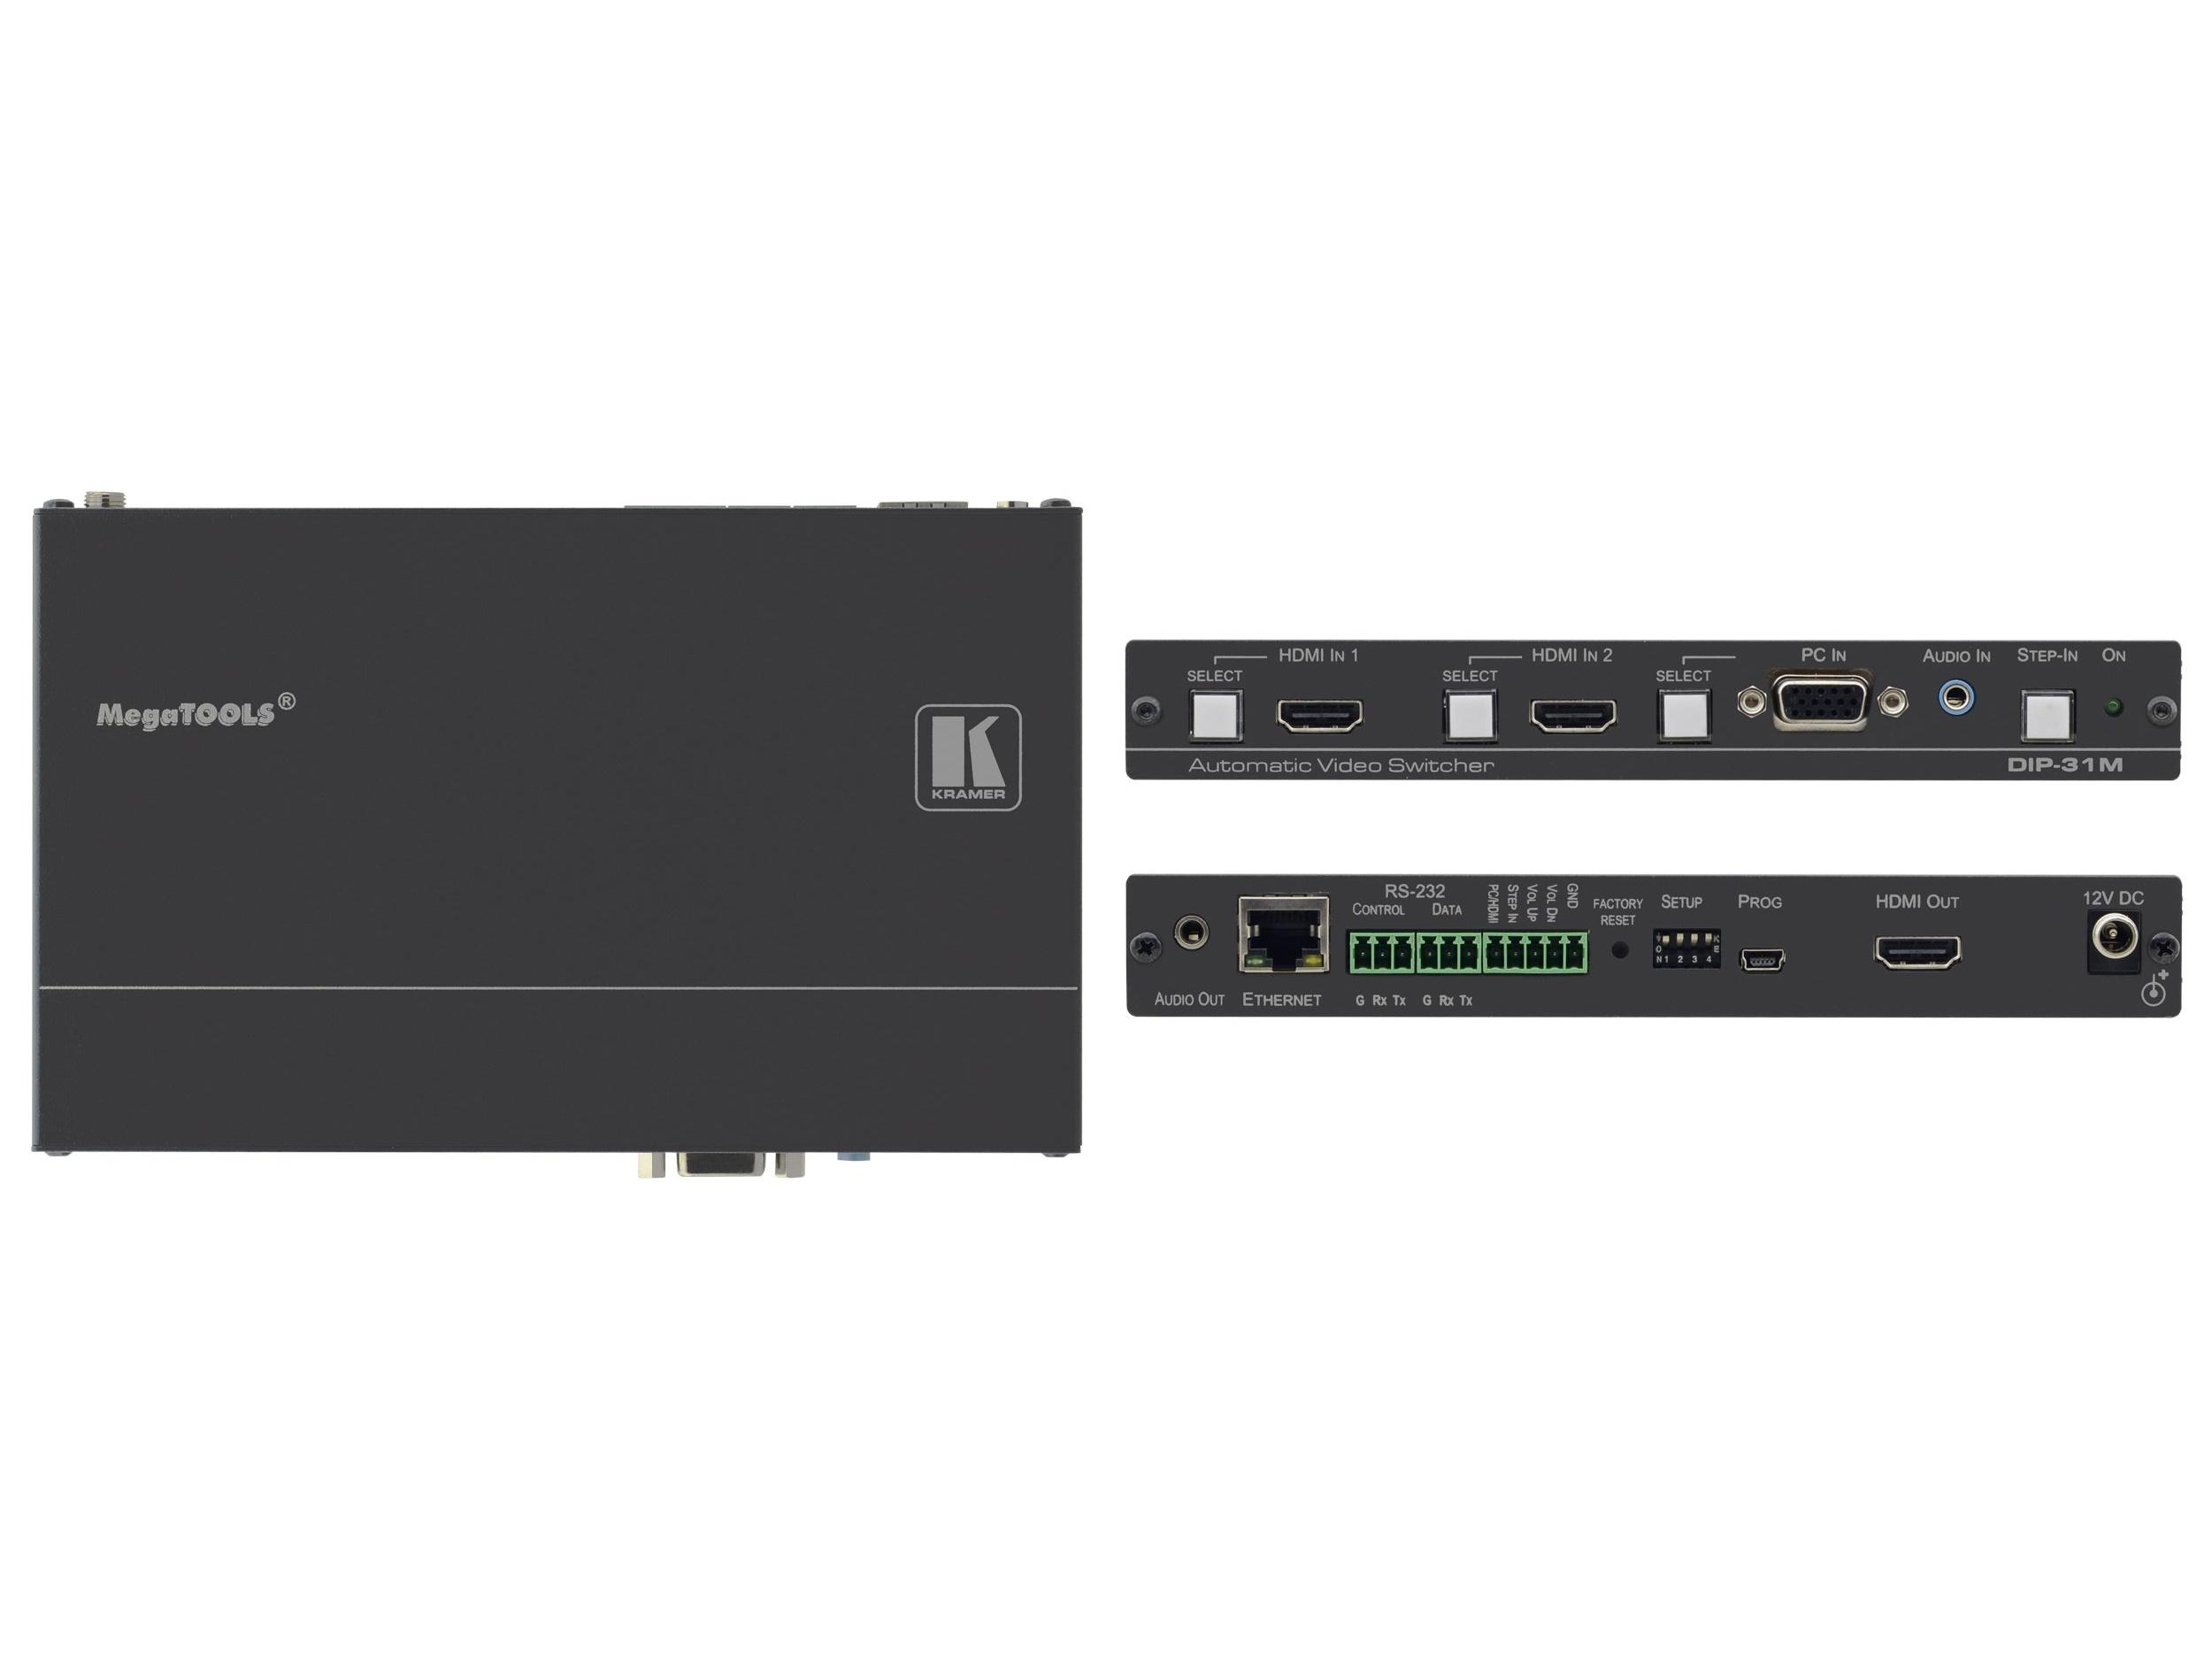 DIP-31M 4K/60 4x2x0 HDMI/Computer Graphics Automatic Video Switcher with Maestro Room Automation by Kramer